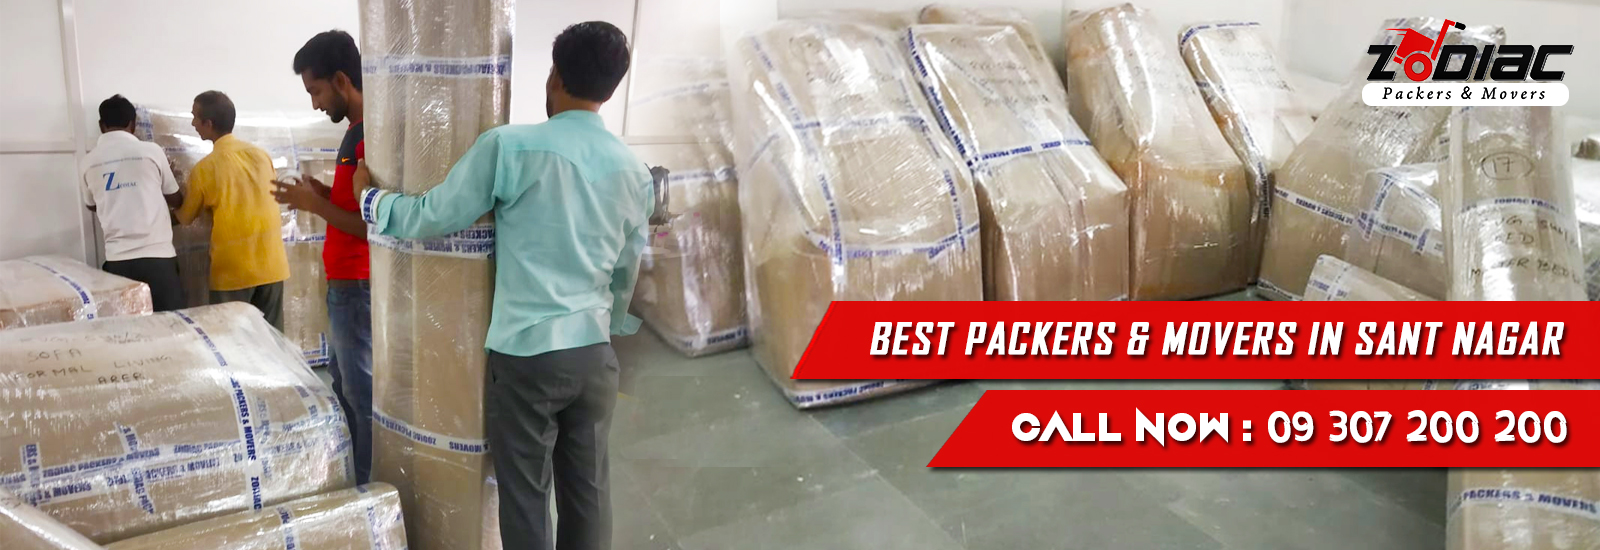 Packers and Movers in Sant Nagar